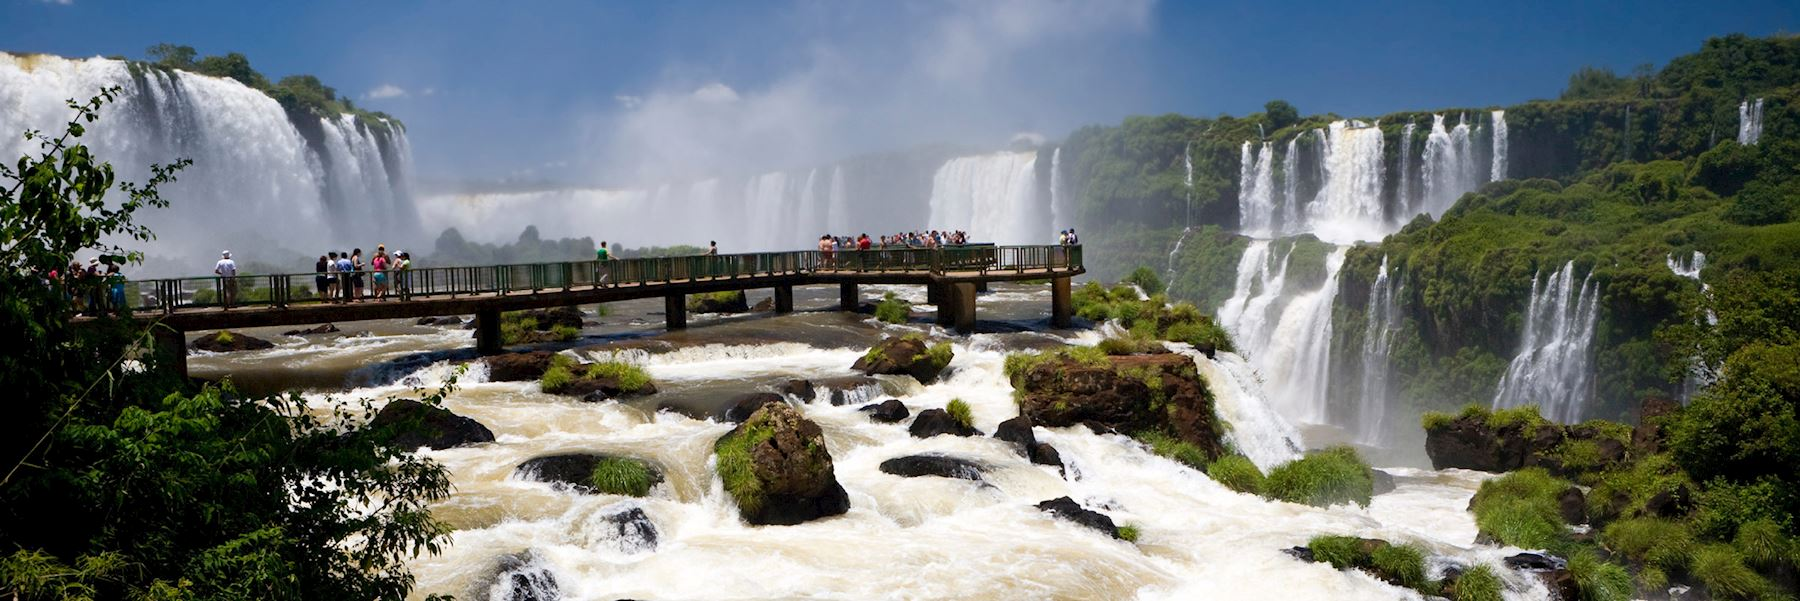 Experts in tailor-made holidays to South America